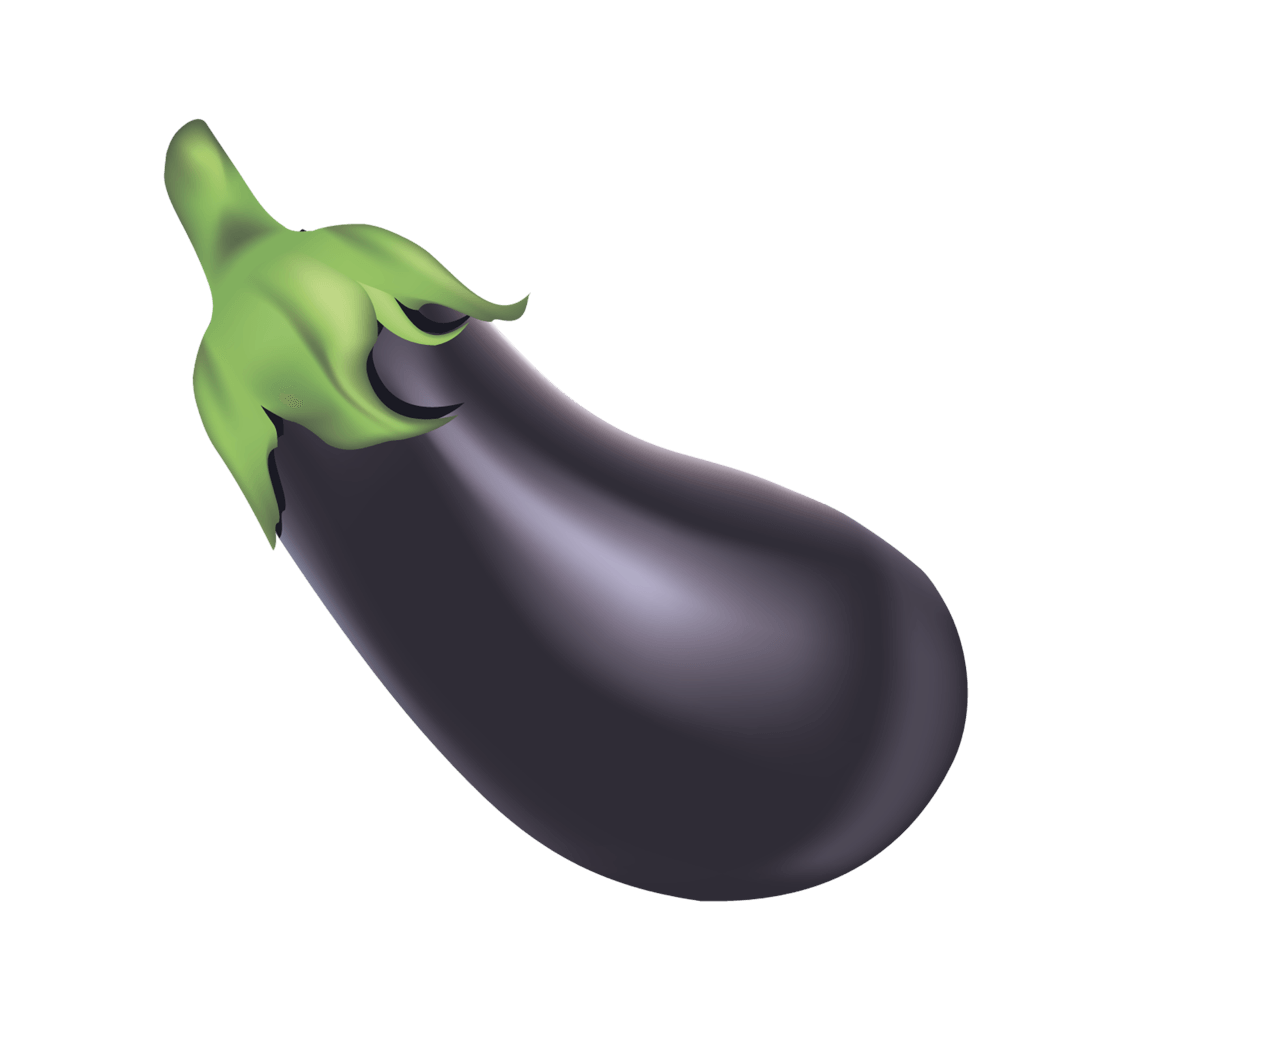 Eggplant Png Images Download PNG Image